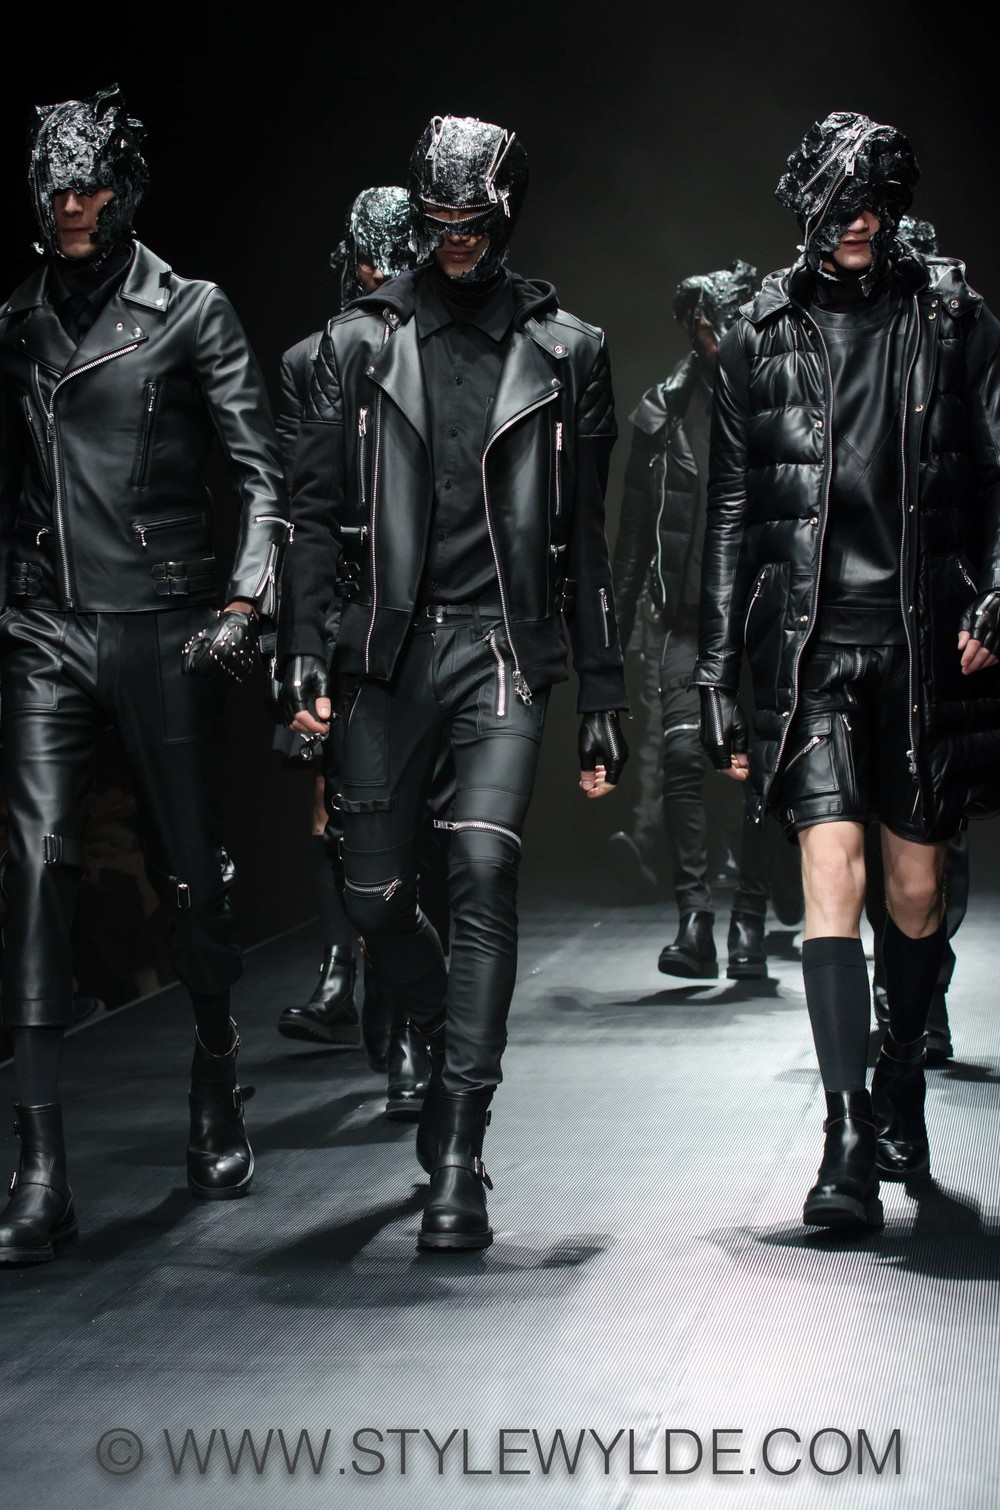 StyleWylde_99percentIS_AW14_edited (1 of 1)-13.jpg